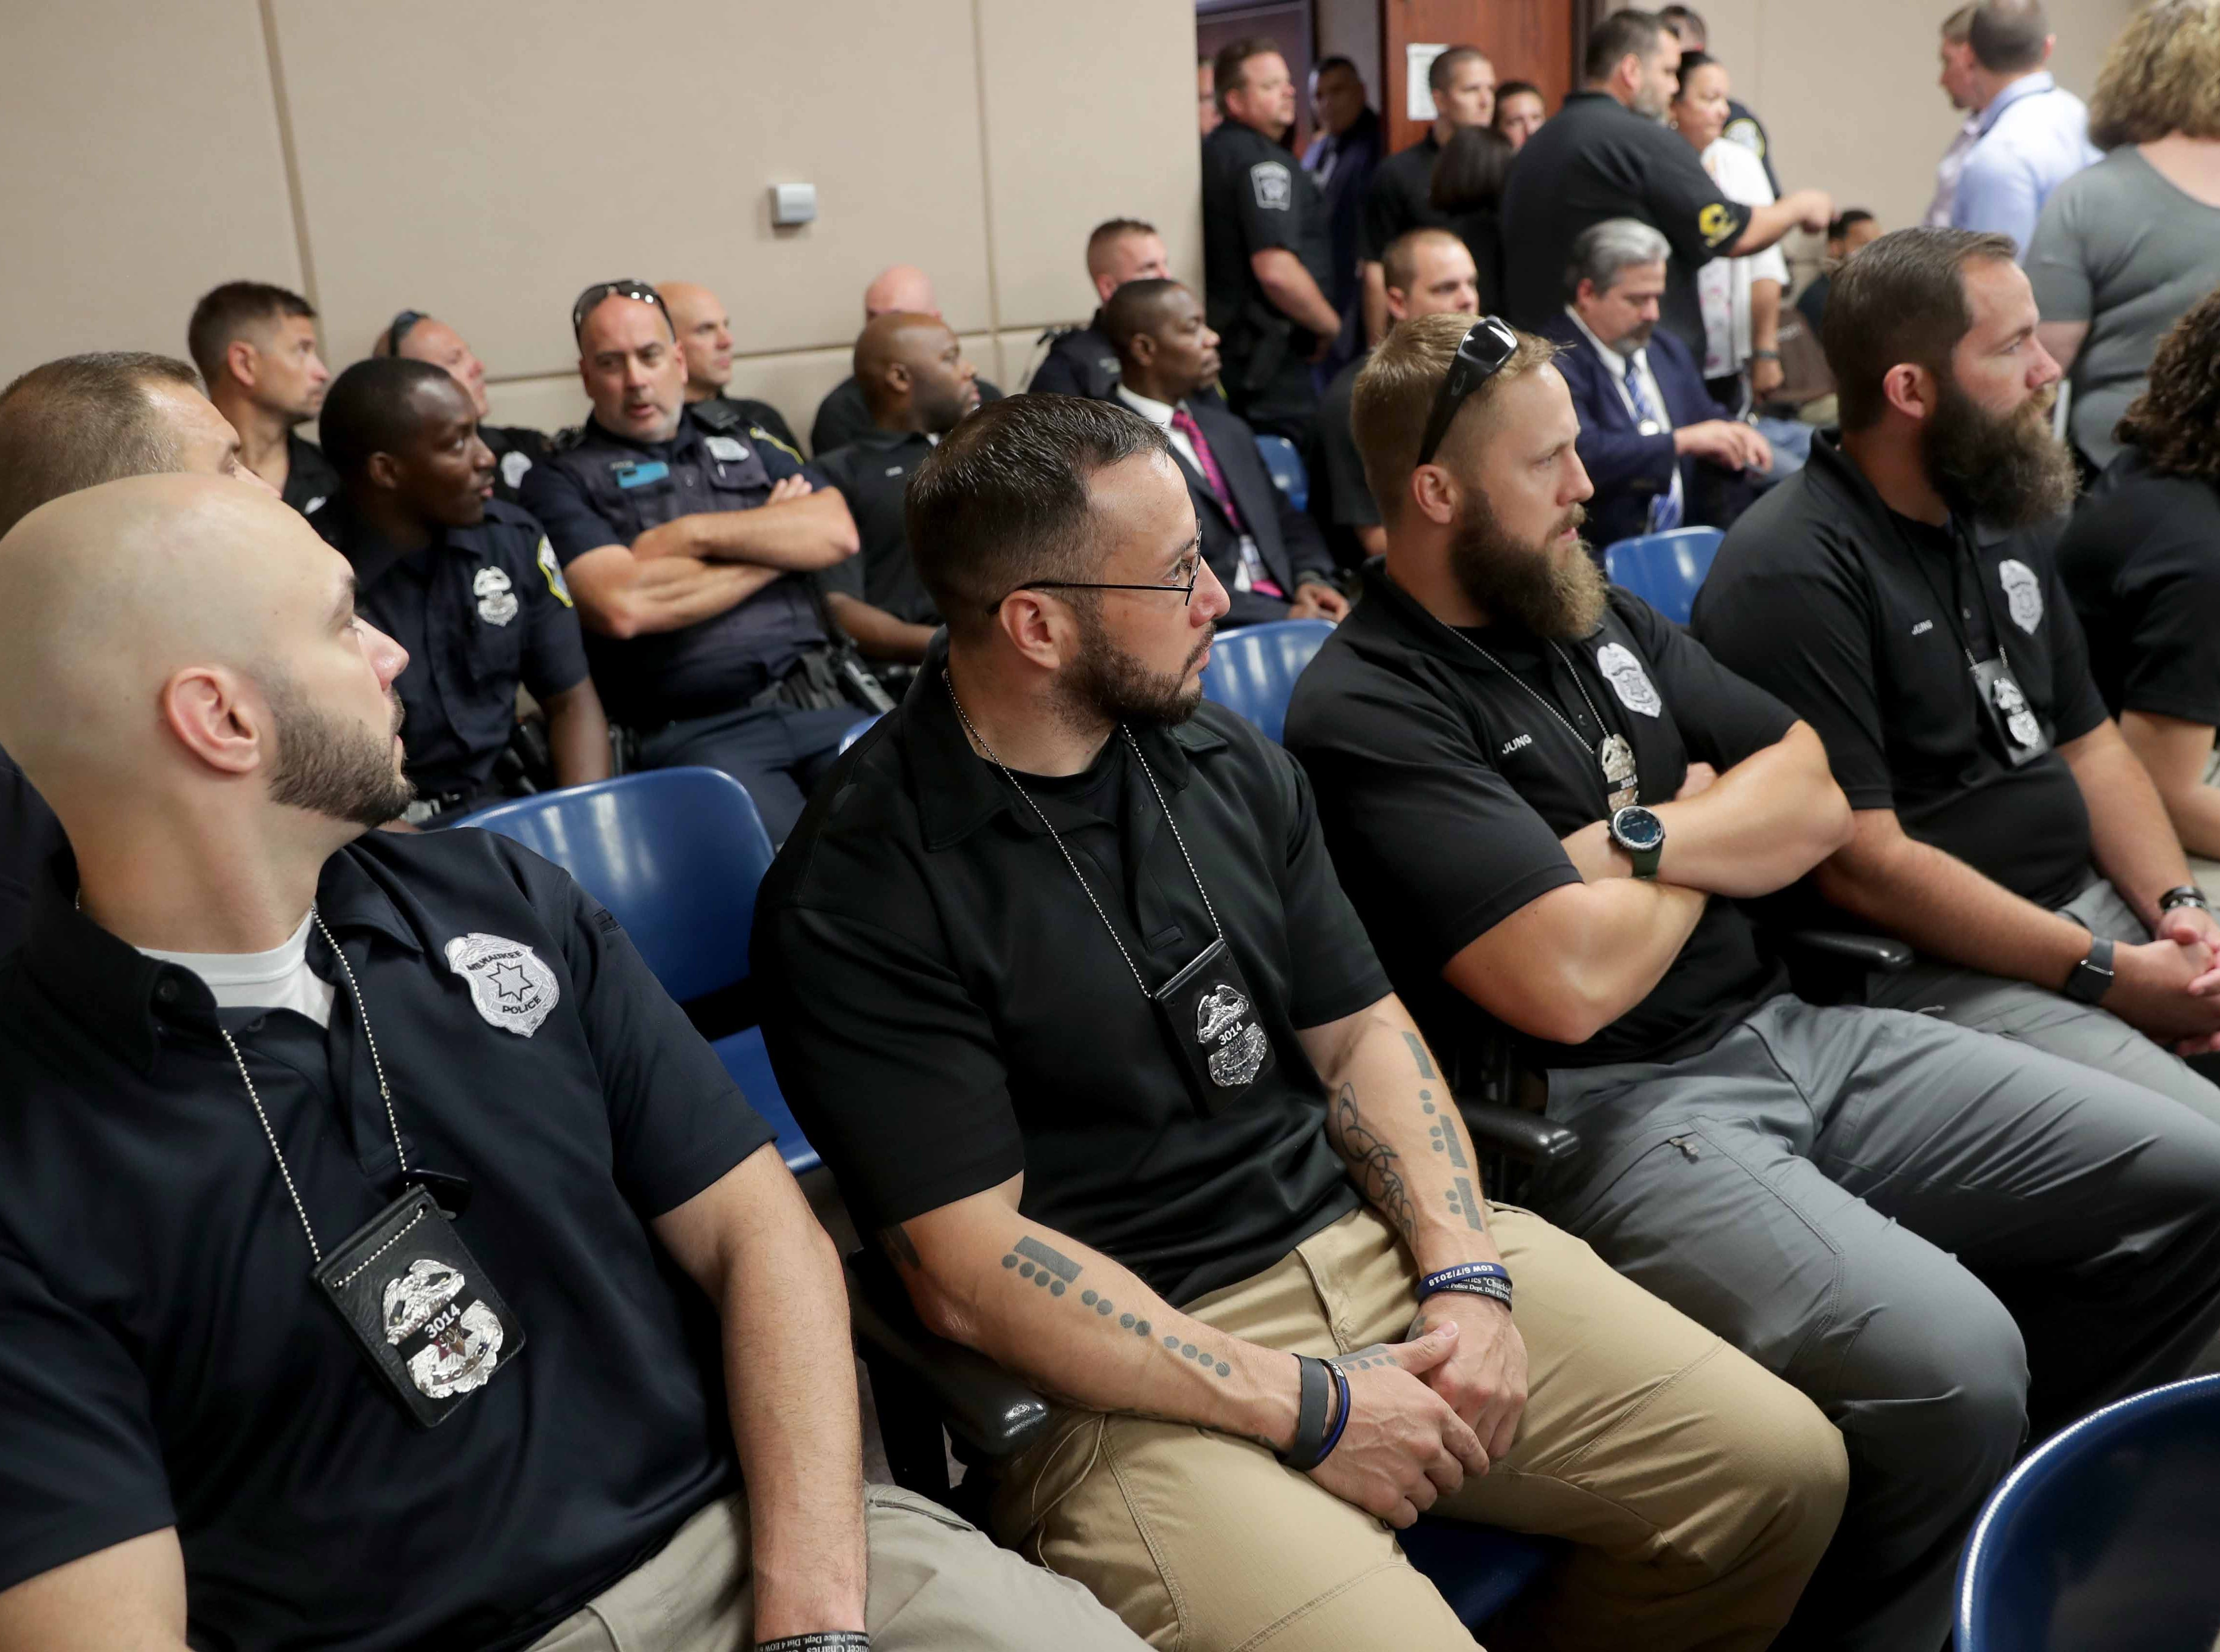 Members of the Milwaukee Police Department gather in court for the appearance of Jonathan Copeland Jr., 30, who is charged in the fatal shooting of Milwaukee Police Officer Michael Michalski.